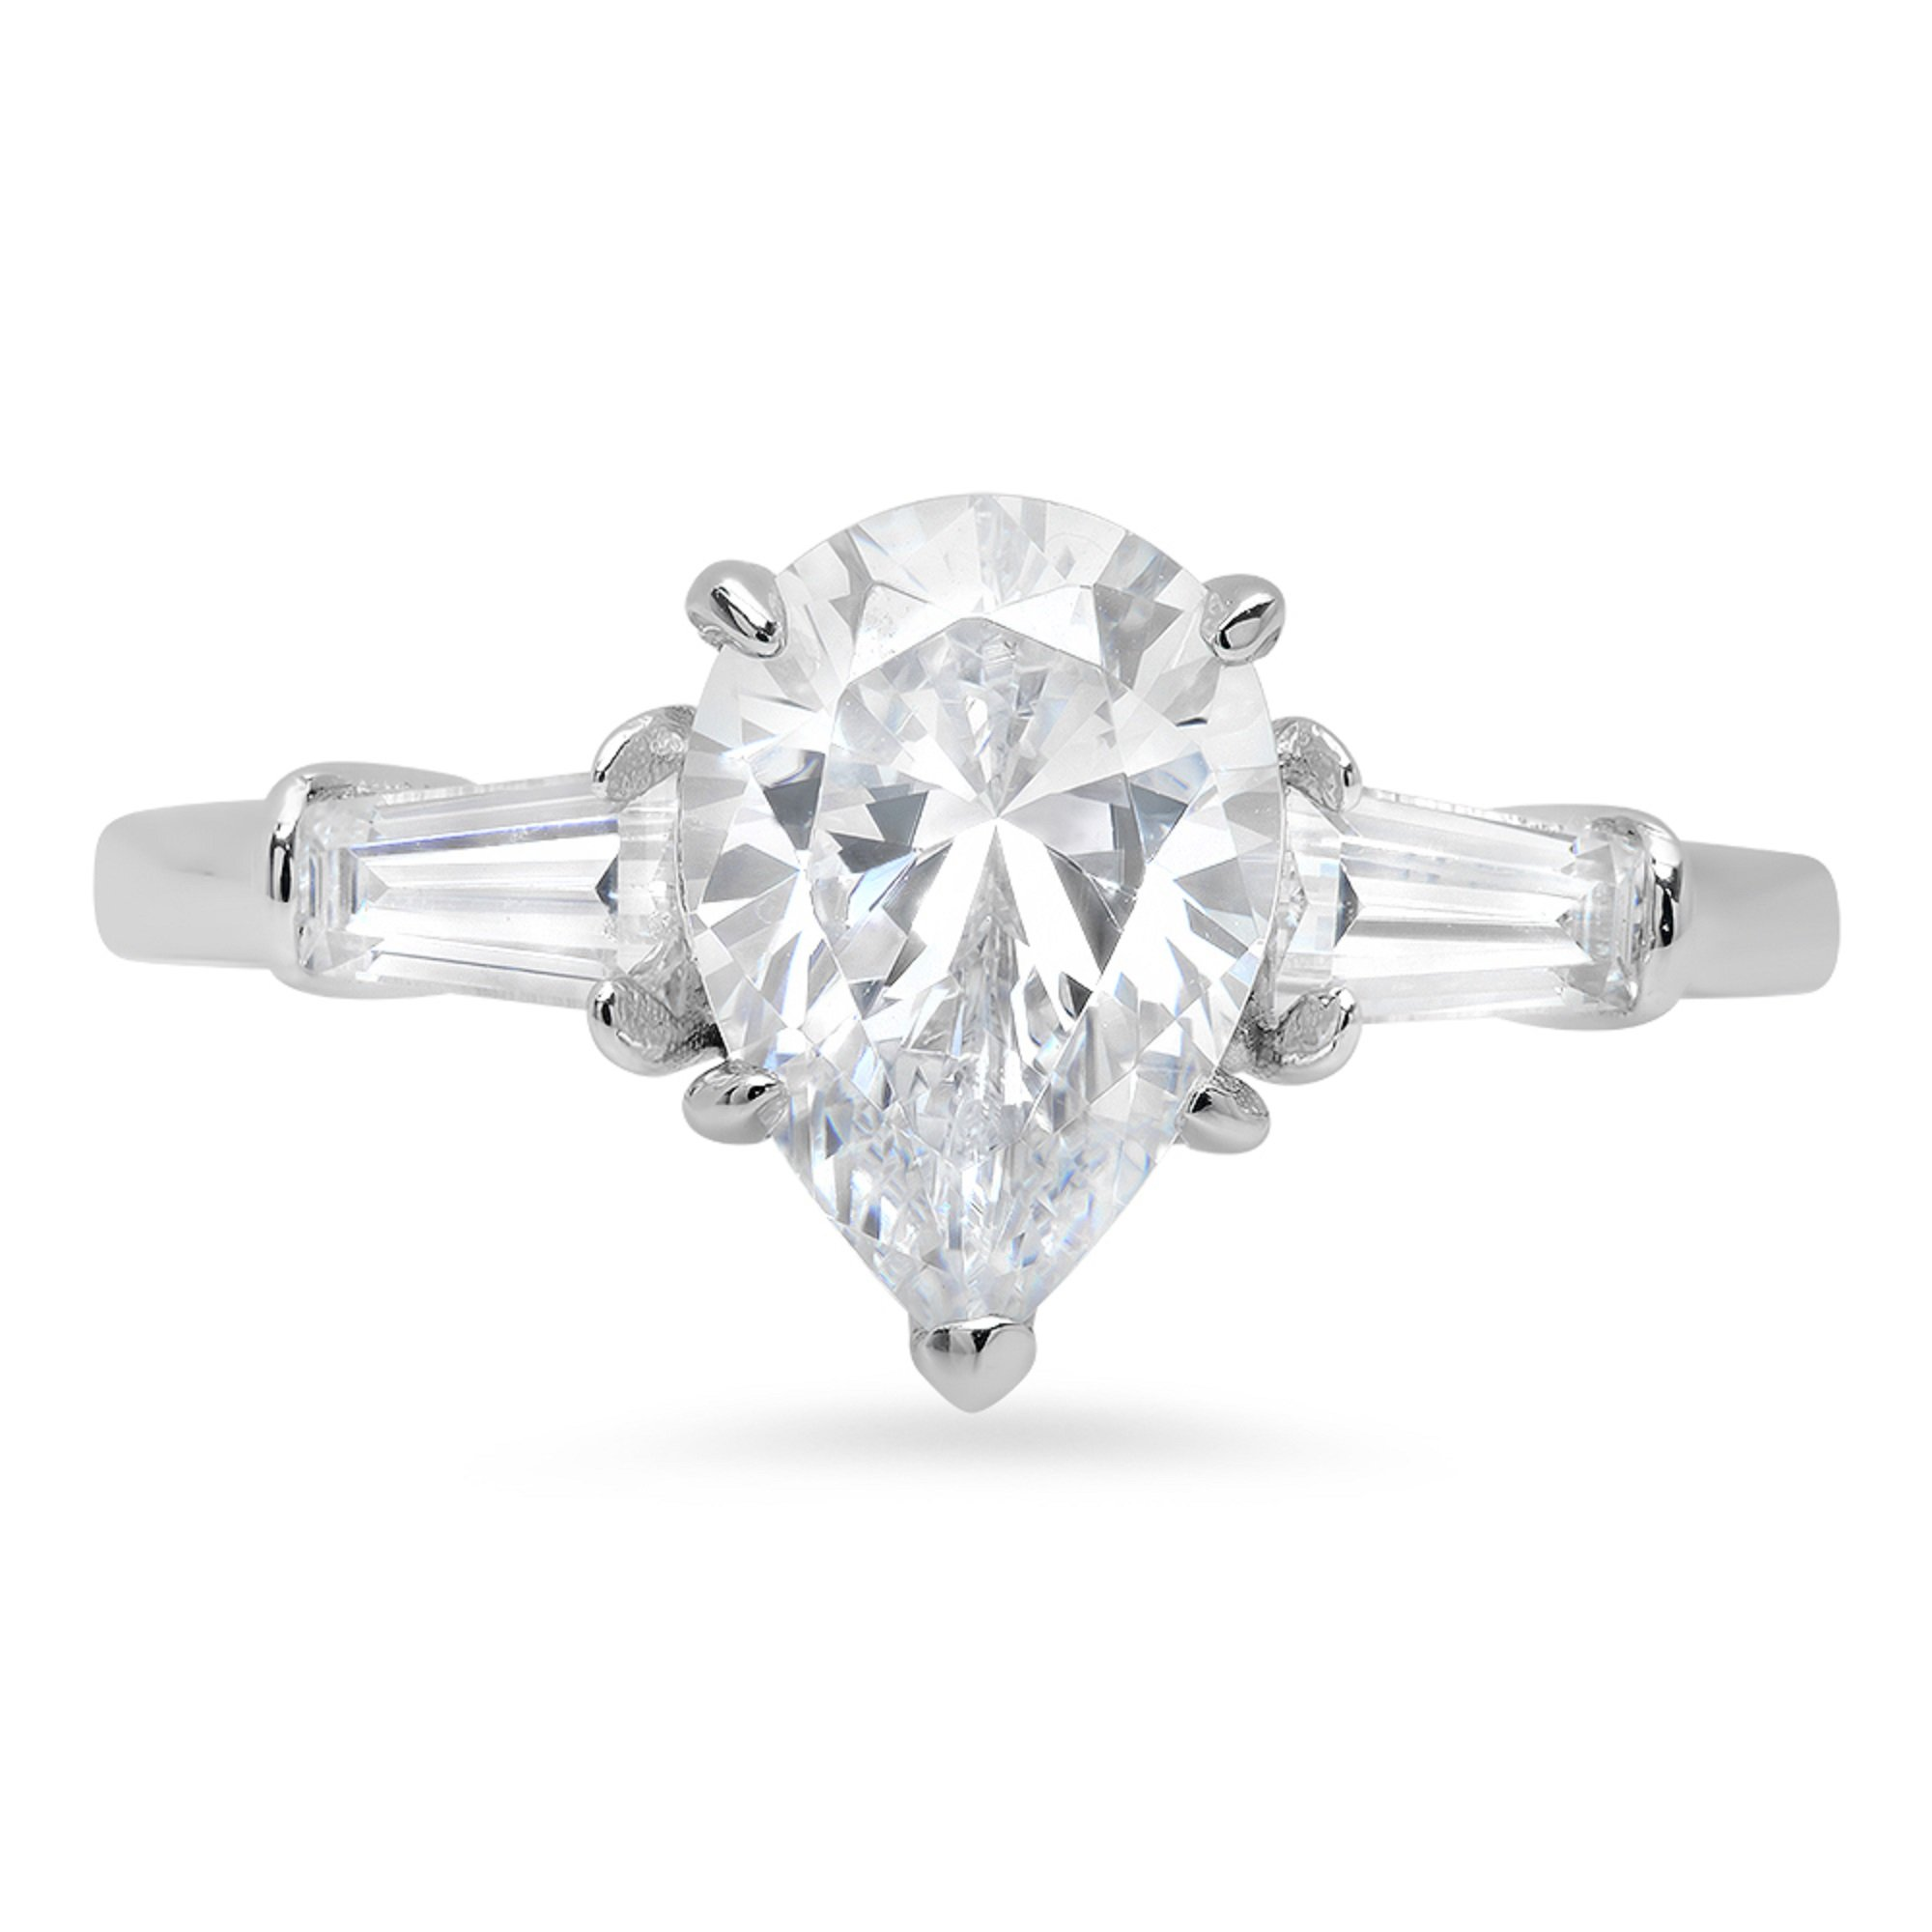 2.6ct Brilliant Pear Baguette Cut Solitaire 3-Stone Statement Ring 14k Solid White Gold, 7